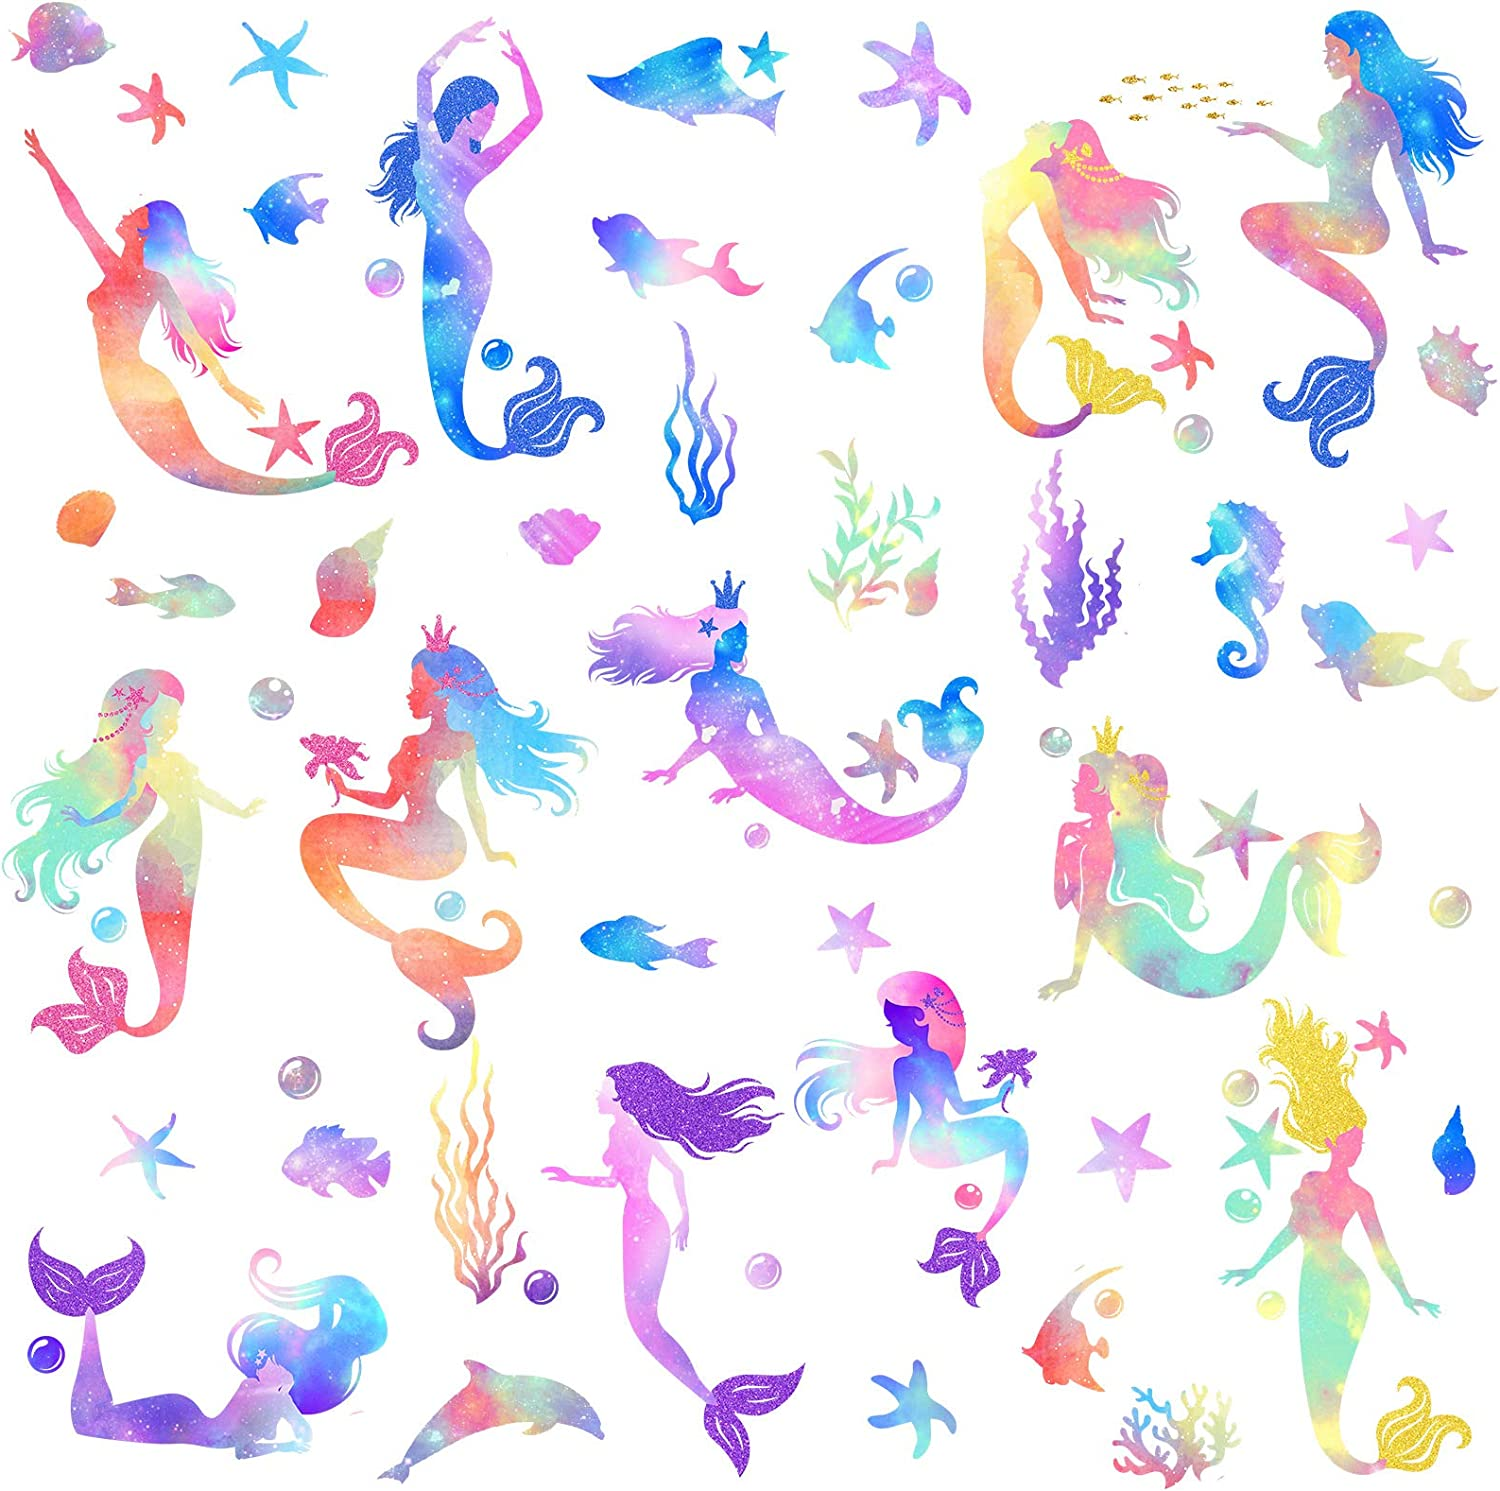 Outus 4 Sheets Mermaid Wall Decals Mermaid Wall Stickers Colorful Gouache Mermaid Decal for Girls Kids Bedroom Nursery Classroom Birthday Party Peel and Stick Wall Decals